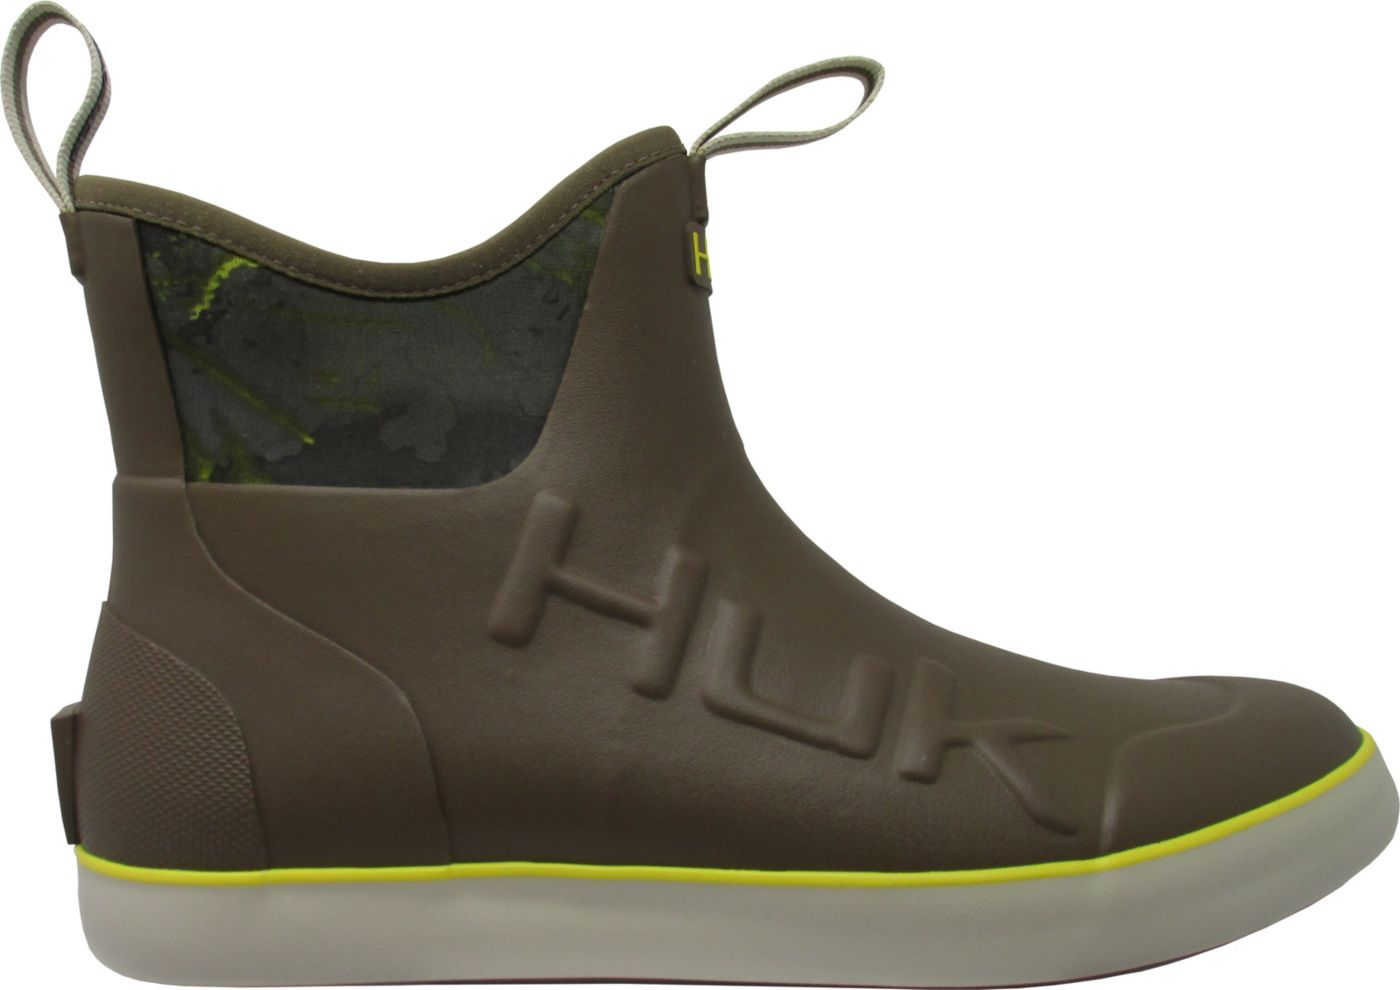 Huk Men's Rogue Wave Rubber Boots